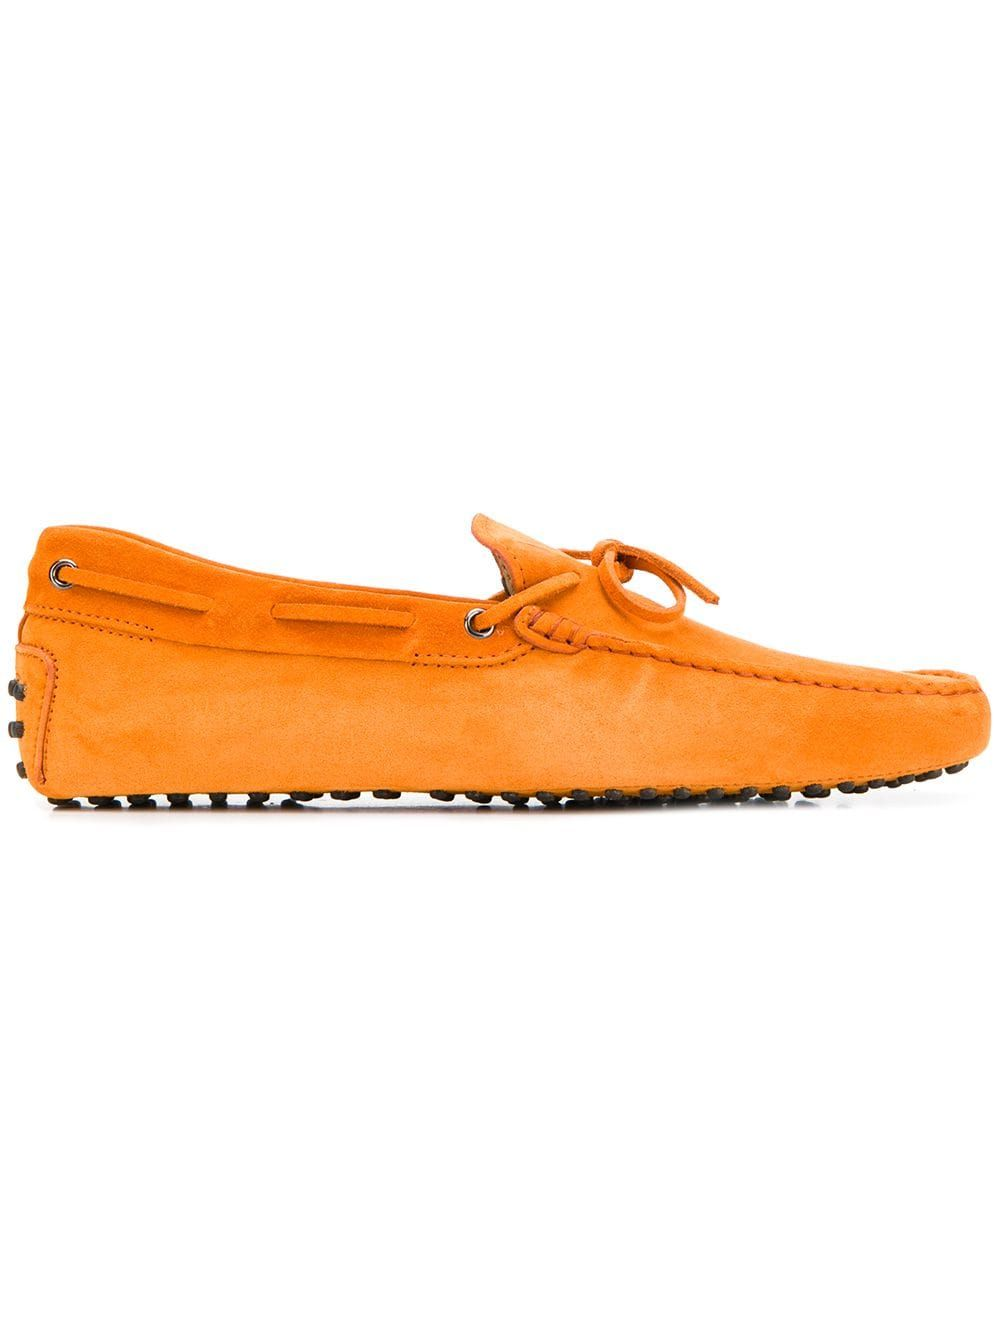 68a30bfab16 TOD S TOD S SUEDE GOMMINO DRIVING SHOES - ORANGE.  tods  shoes ...